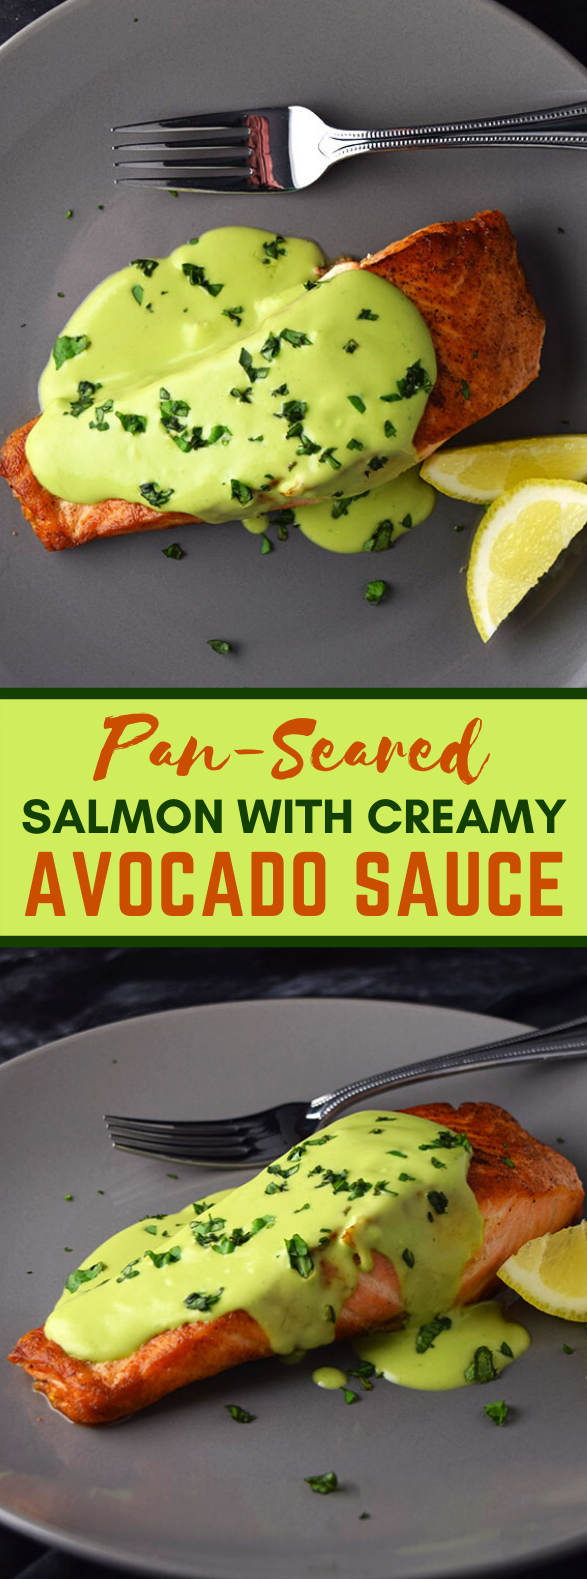 Pan-Seared Salmon with Creamy Avocado Sauce #dinner #recipes